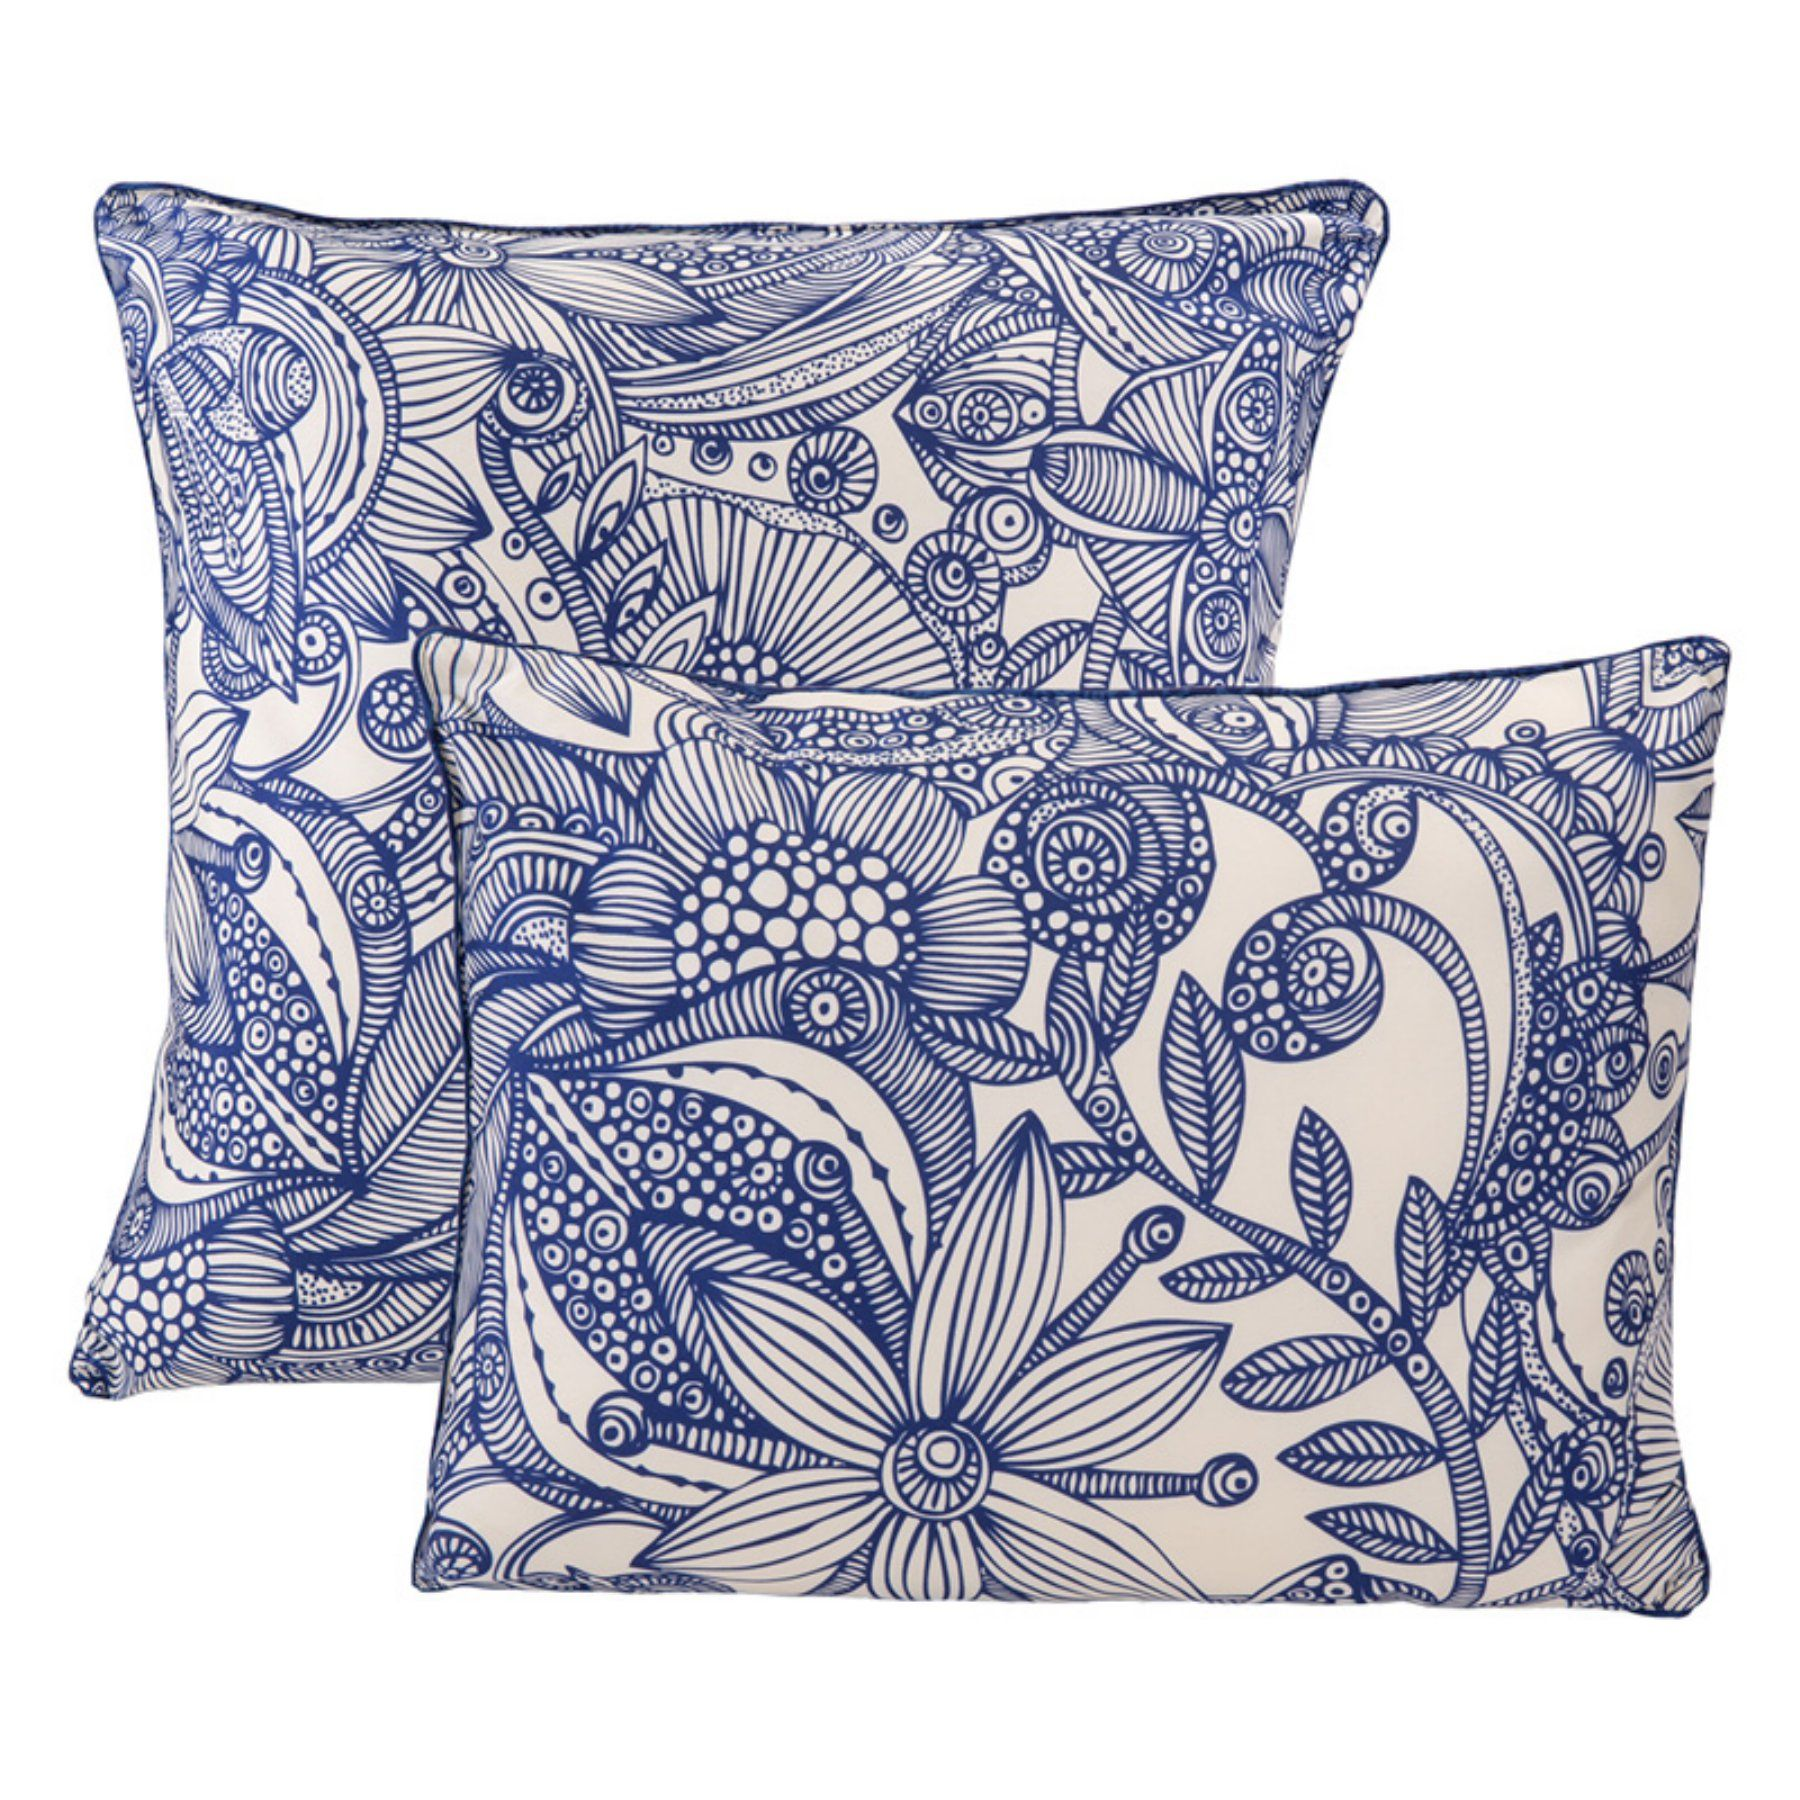 Valentina piece flowers and doodles decorative pillow set by epoch